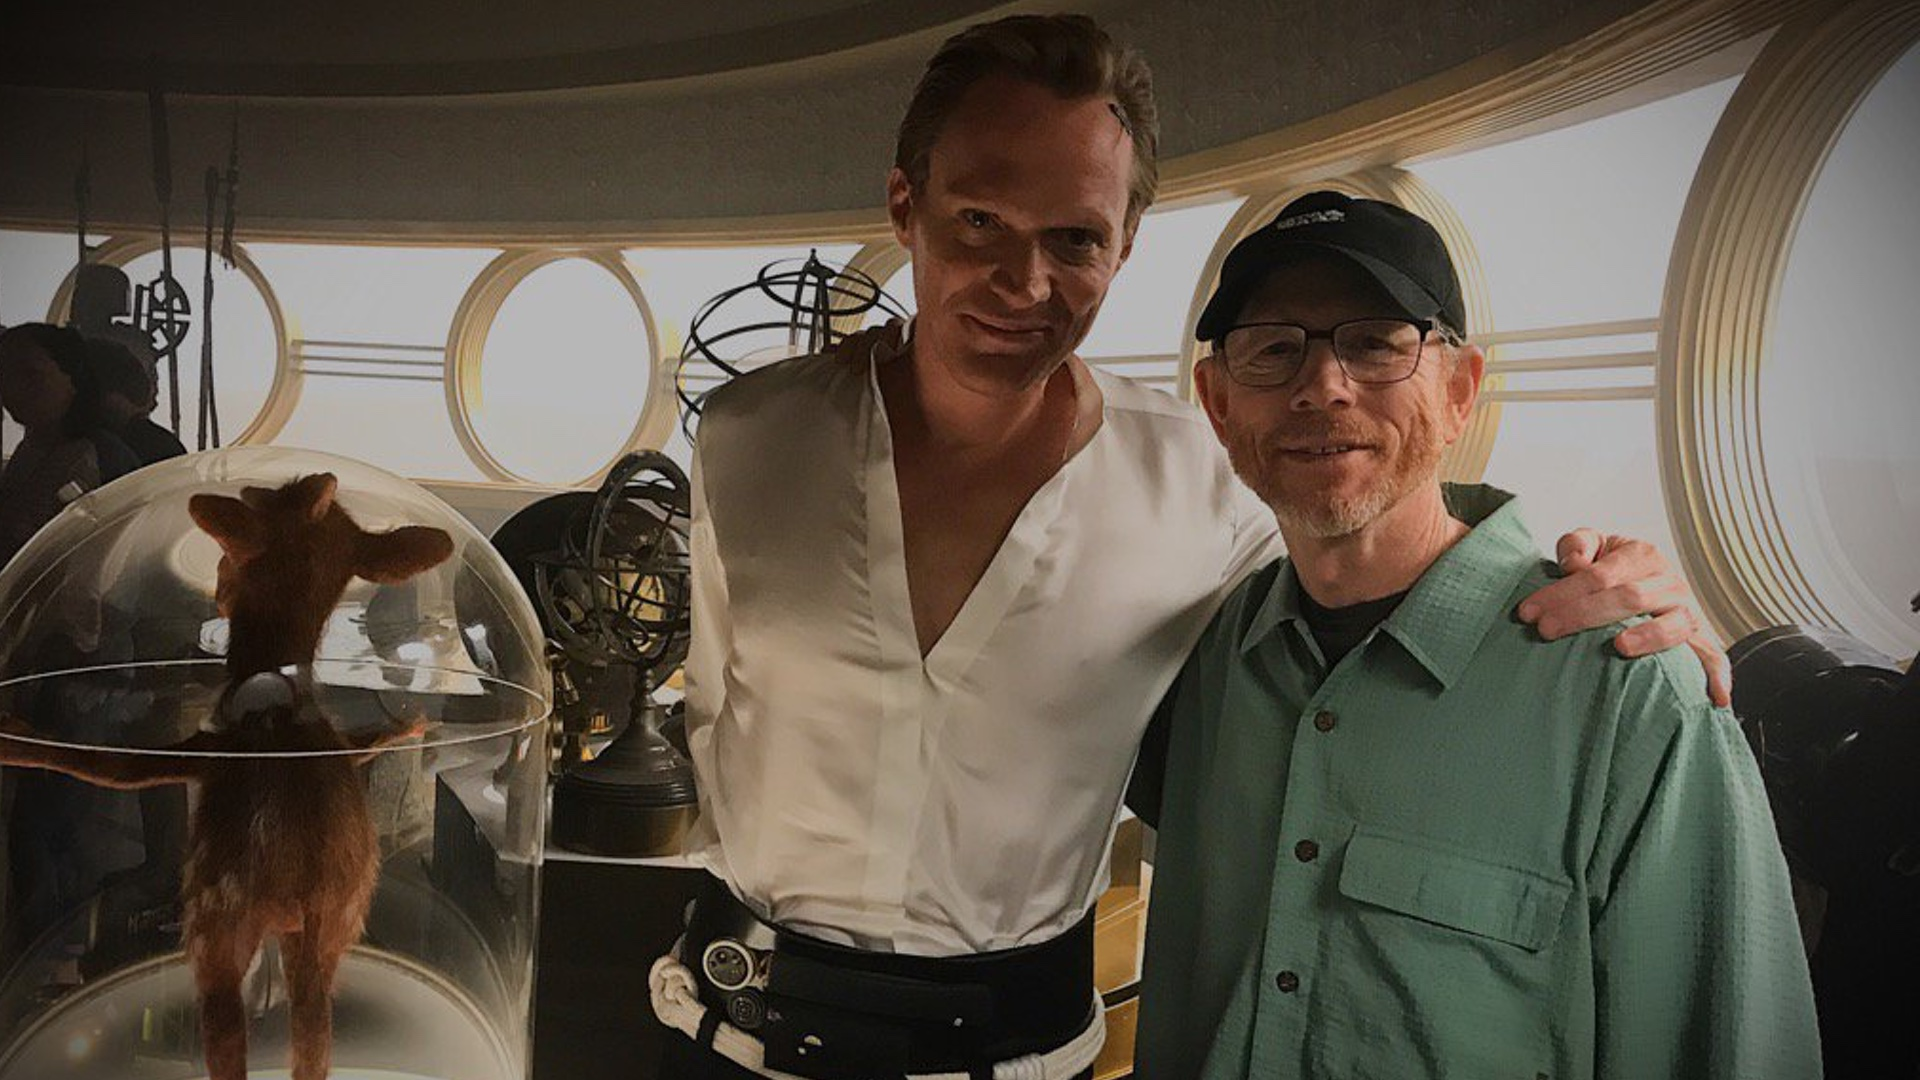 paul-bettany-explains-that-solo-a-star-wars-story-is-a-gangster-movie-social.jpg